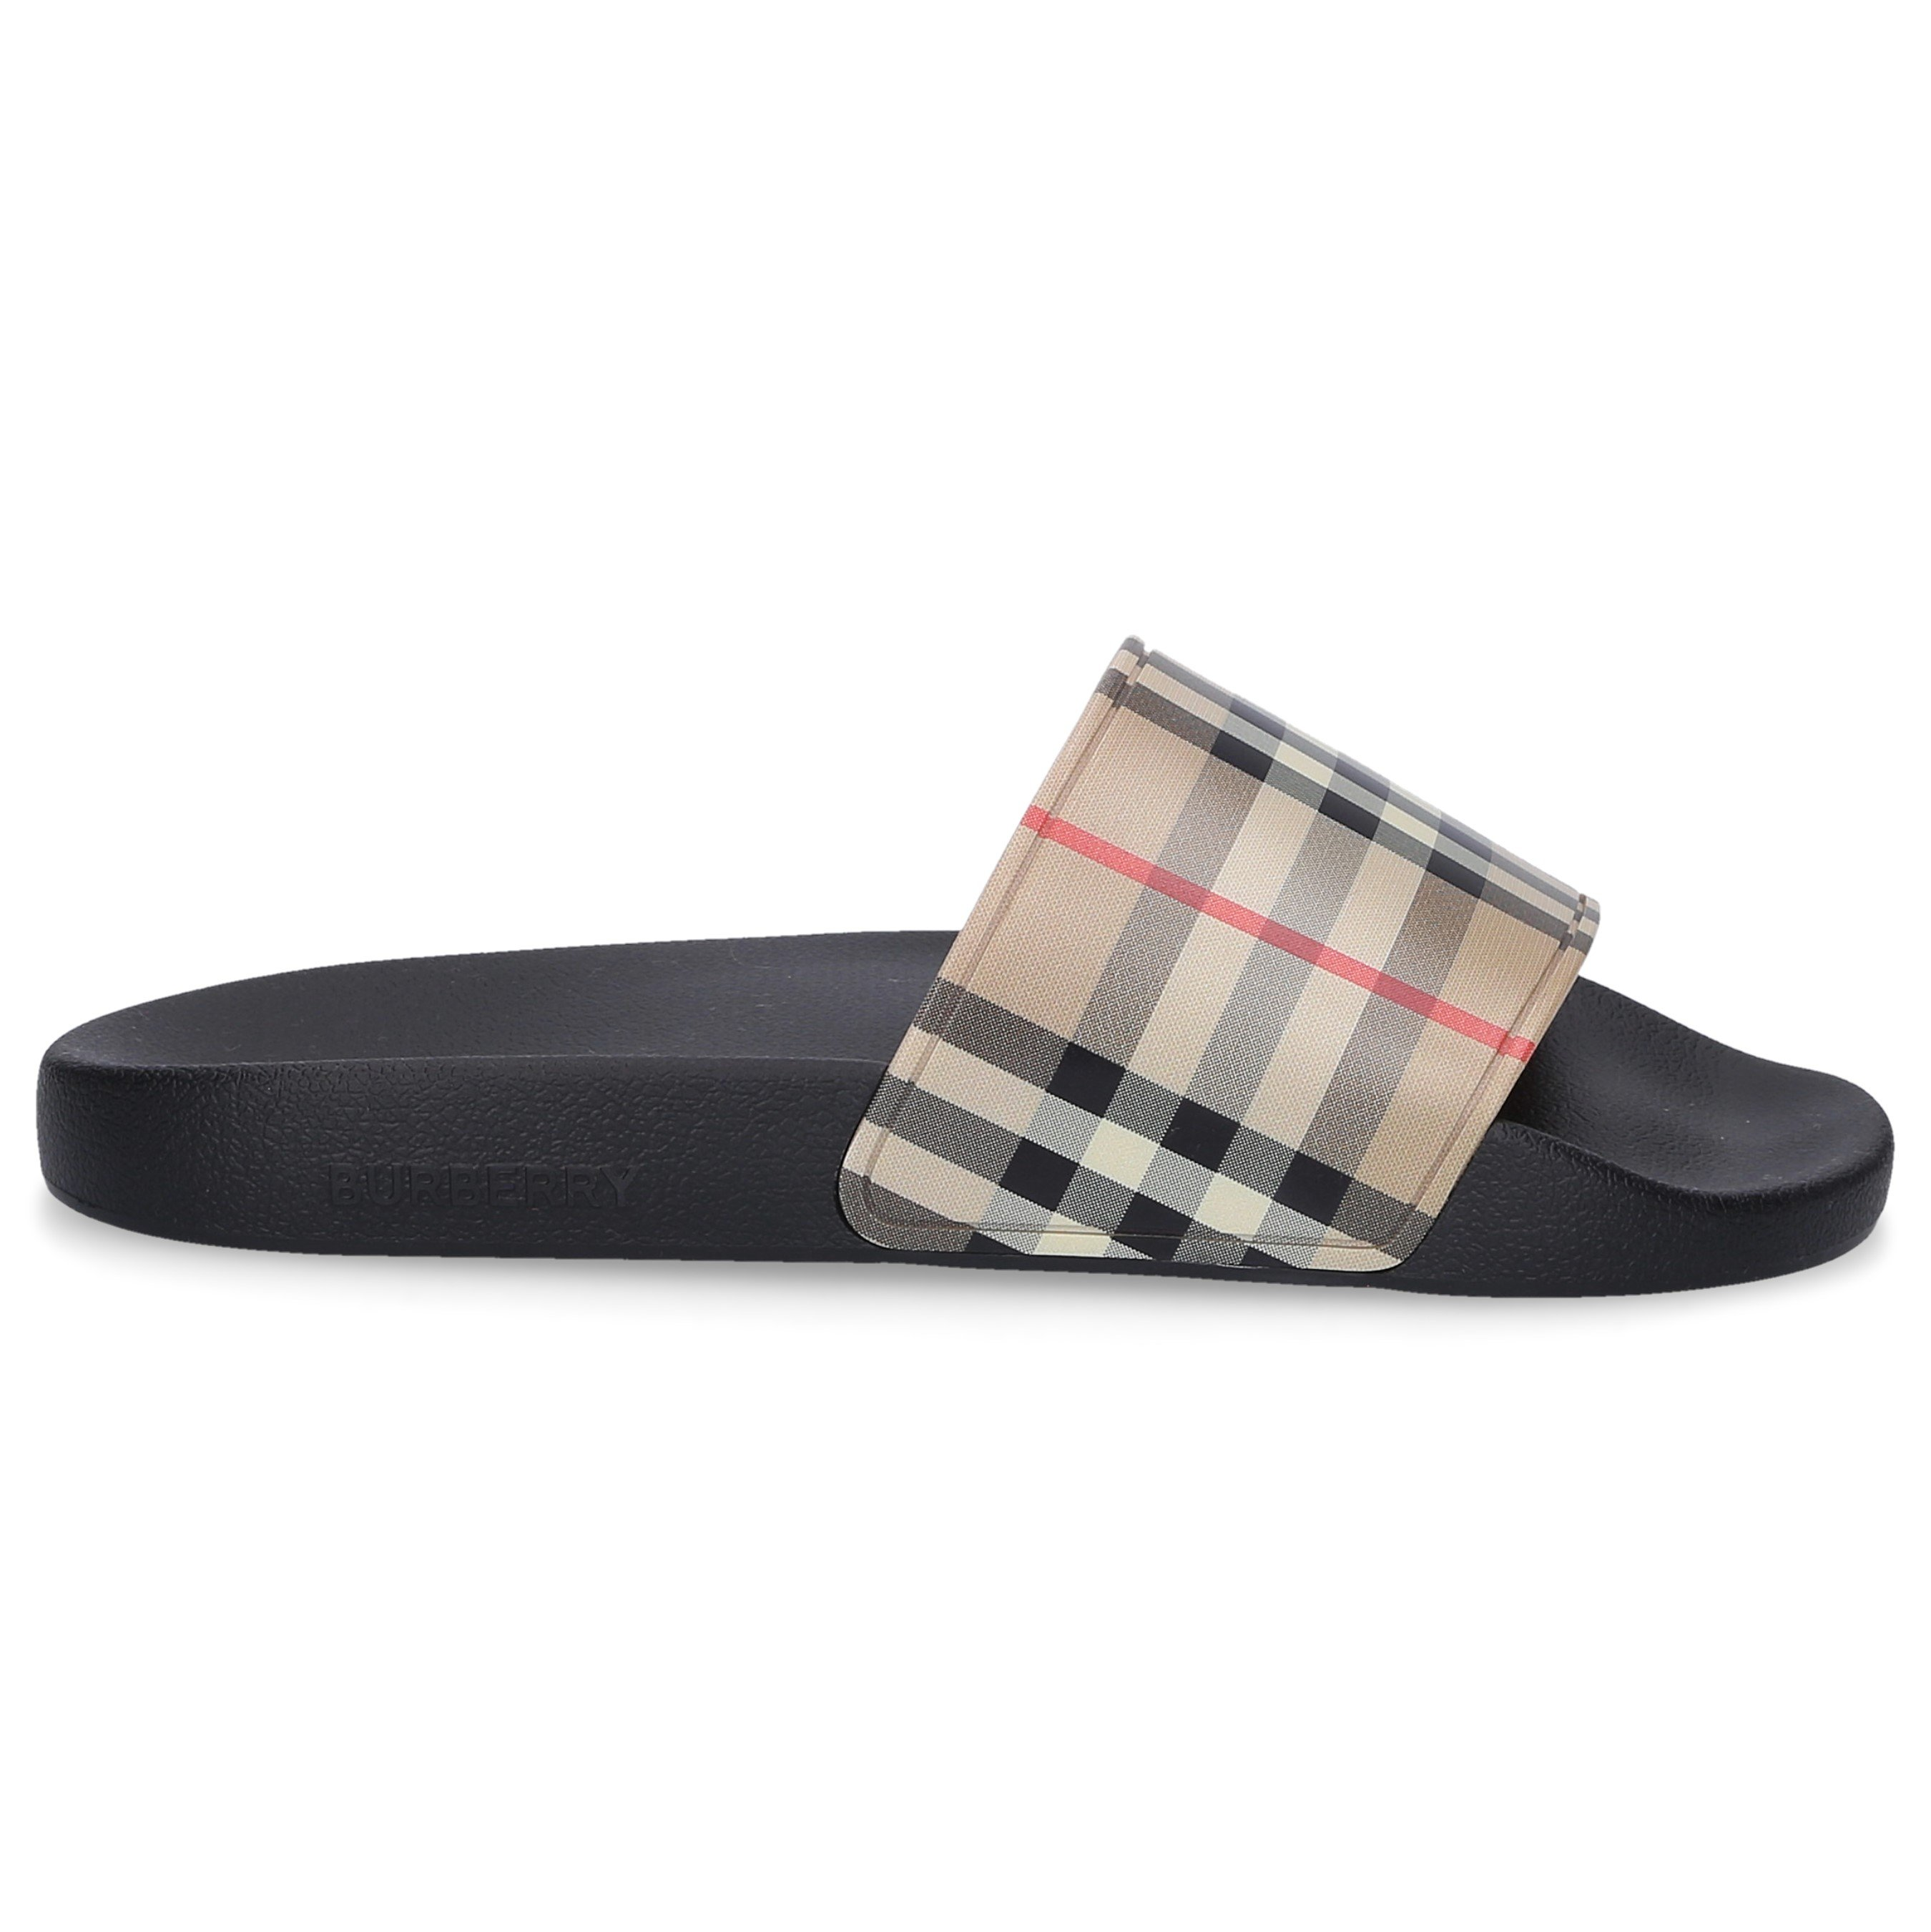 Burberry BEACH SANDALS ARCHIVIO GUM LOGO BLACK BEIGE